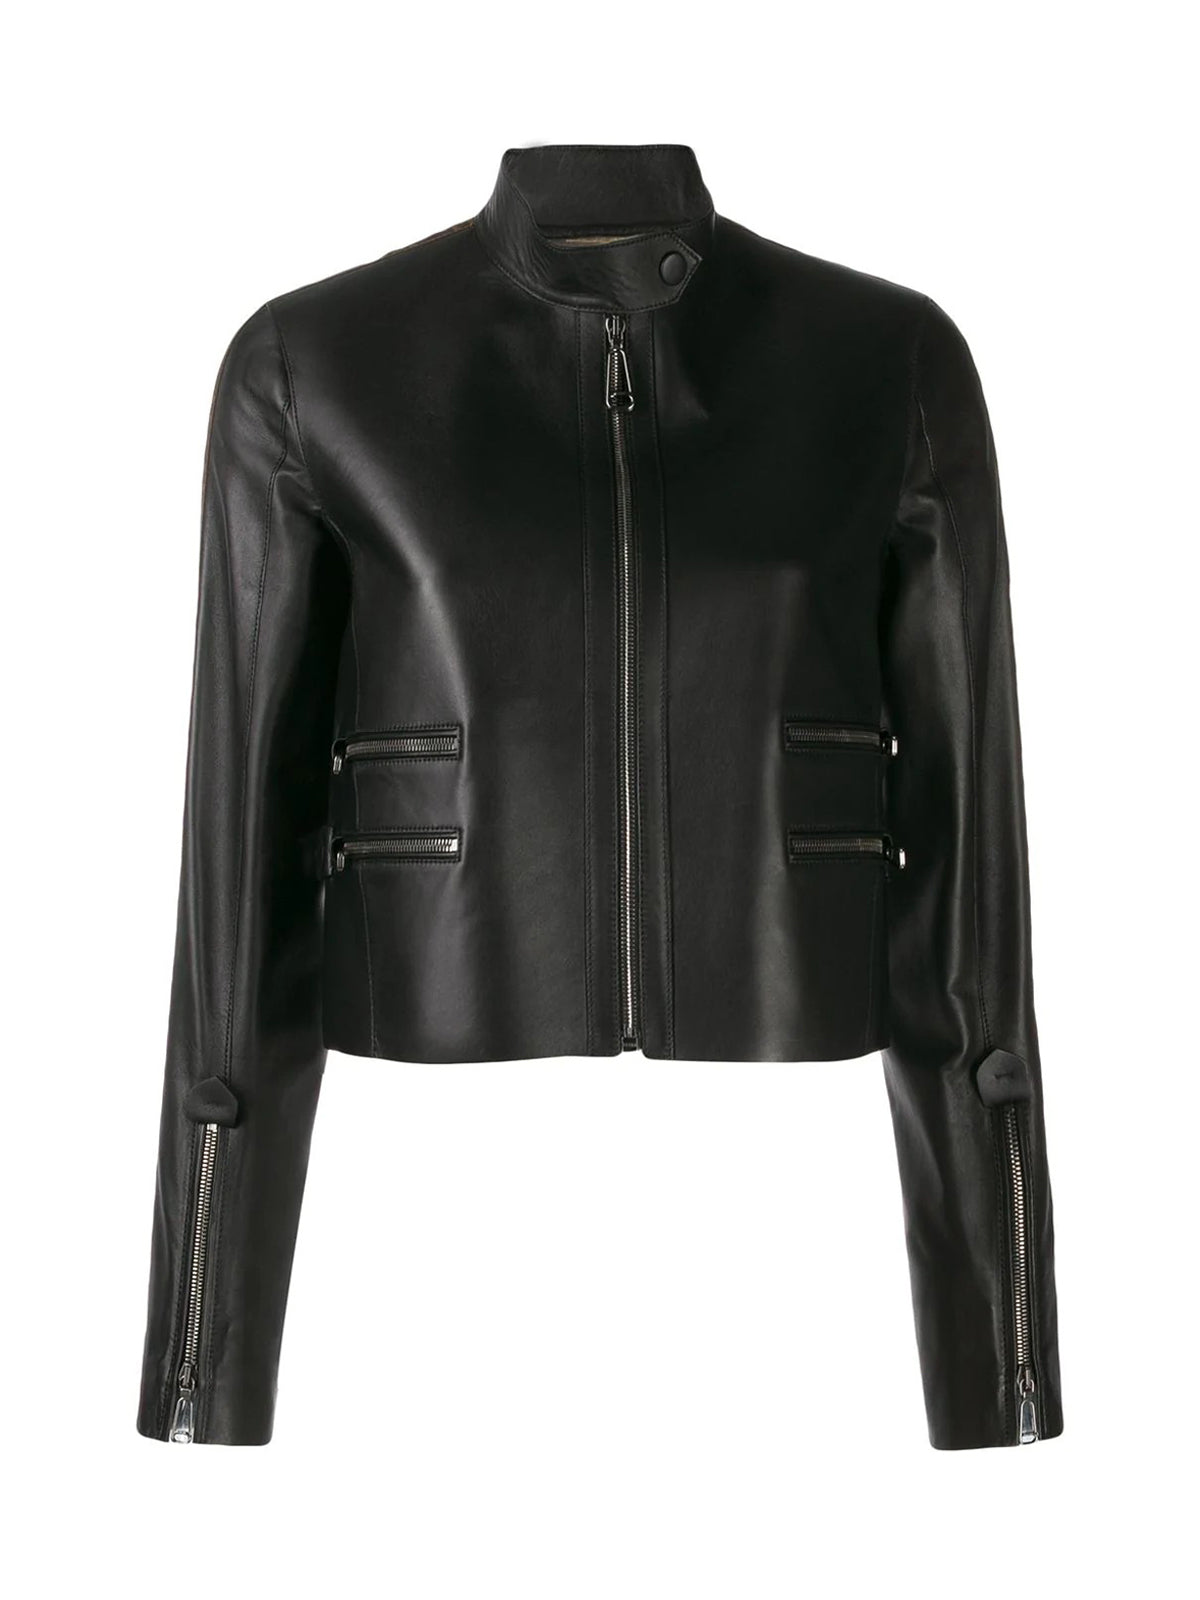 FF logo leather jacket